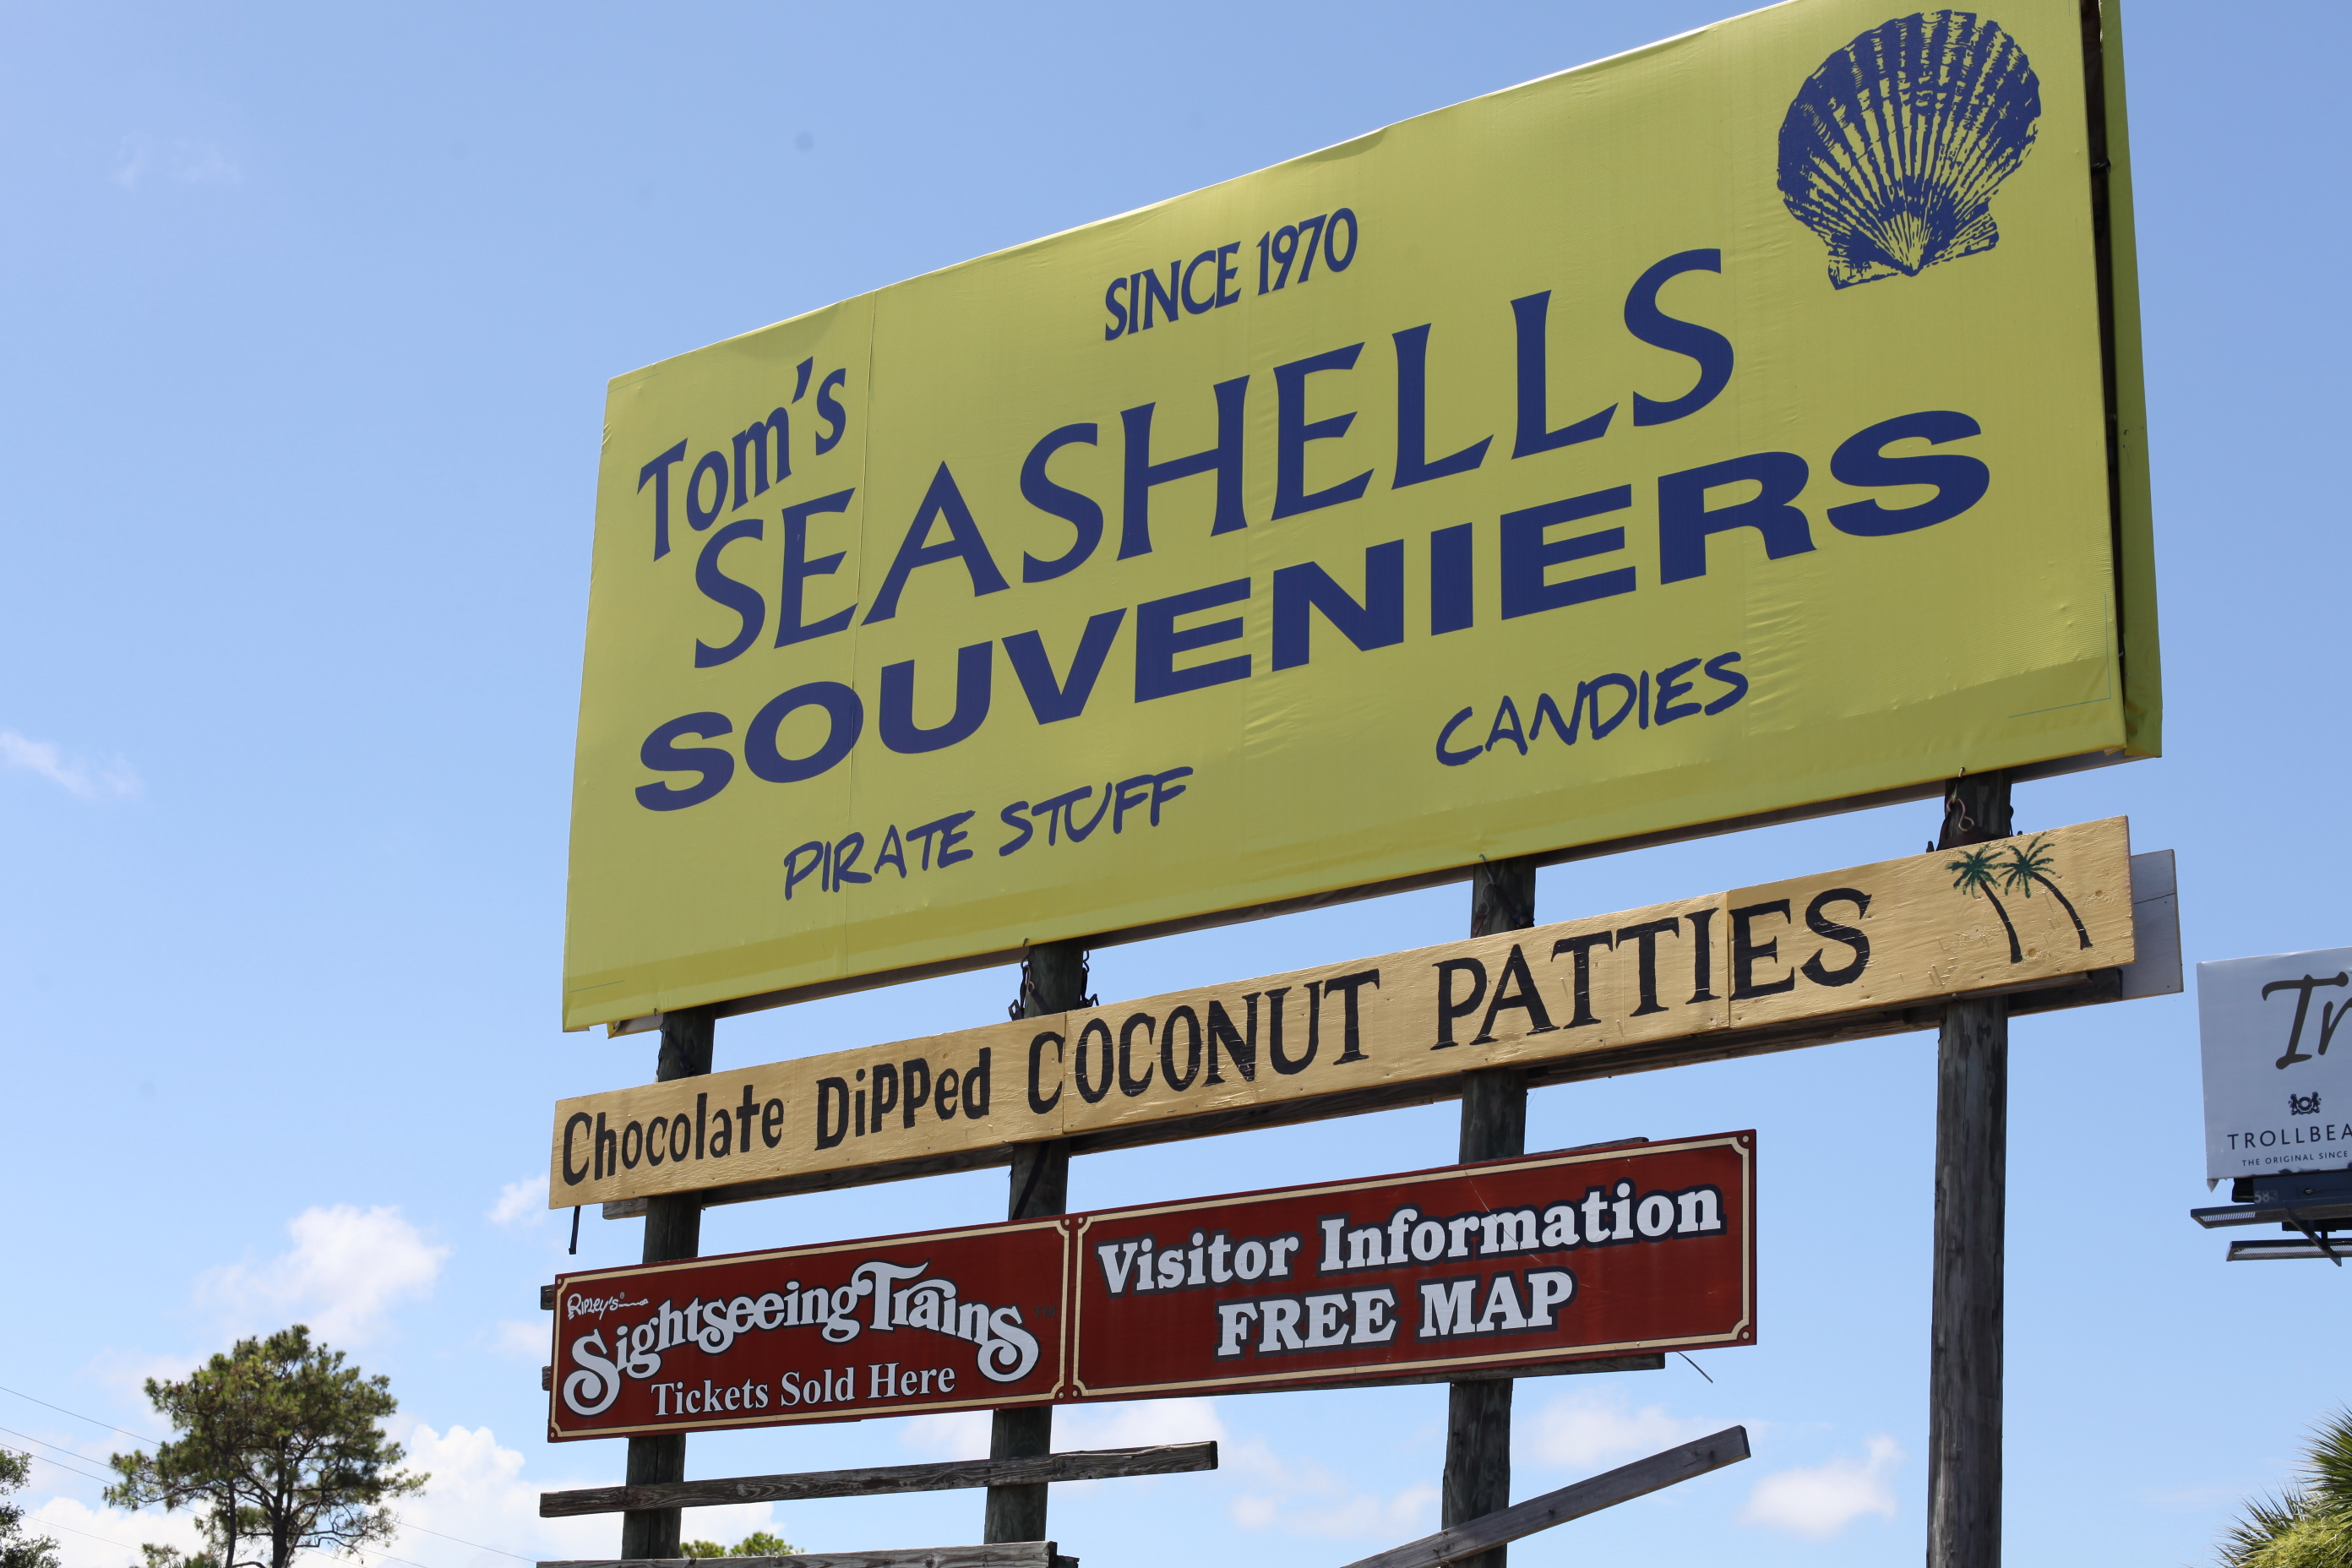 Tom's Seashells, 1812 A1A South, also known as Tom's Fruits & Gifts has been open since 1970 near St. Augustine Beach. Photos by RENEE UNSWORTH